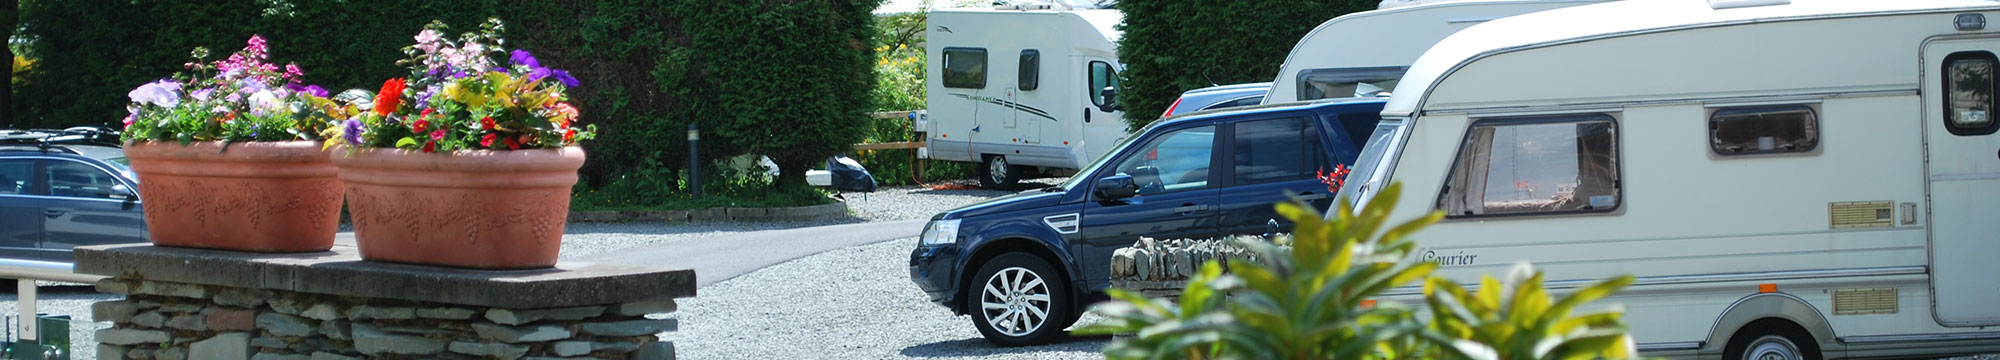 Skelwith Fold Caravan Park motorhome touring pitches